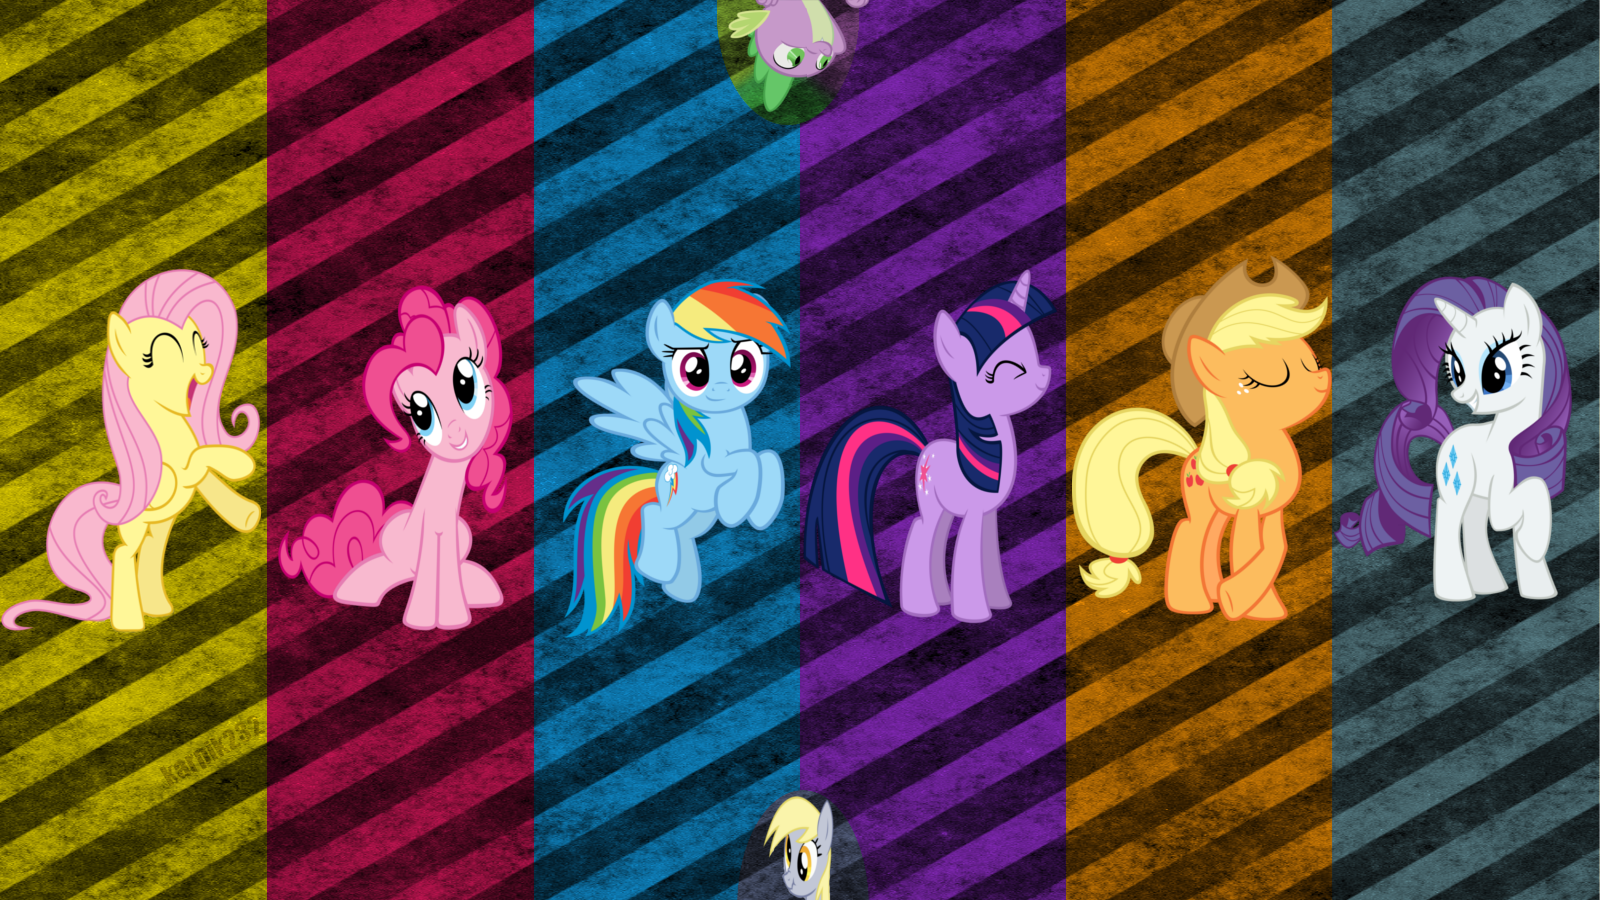 http://4.bp.blogspot.com/-SnzhZL7BTRw/UVhIUcb-4cI/AAAAAAAAzu0/BaoRC5mbZPk/s1600/my_little_pony__friendship_is_magic_wallpaper_by_karpik232-d53pdso.png